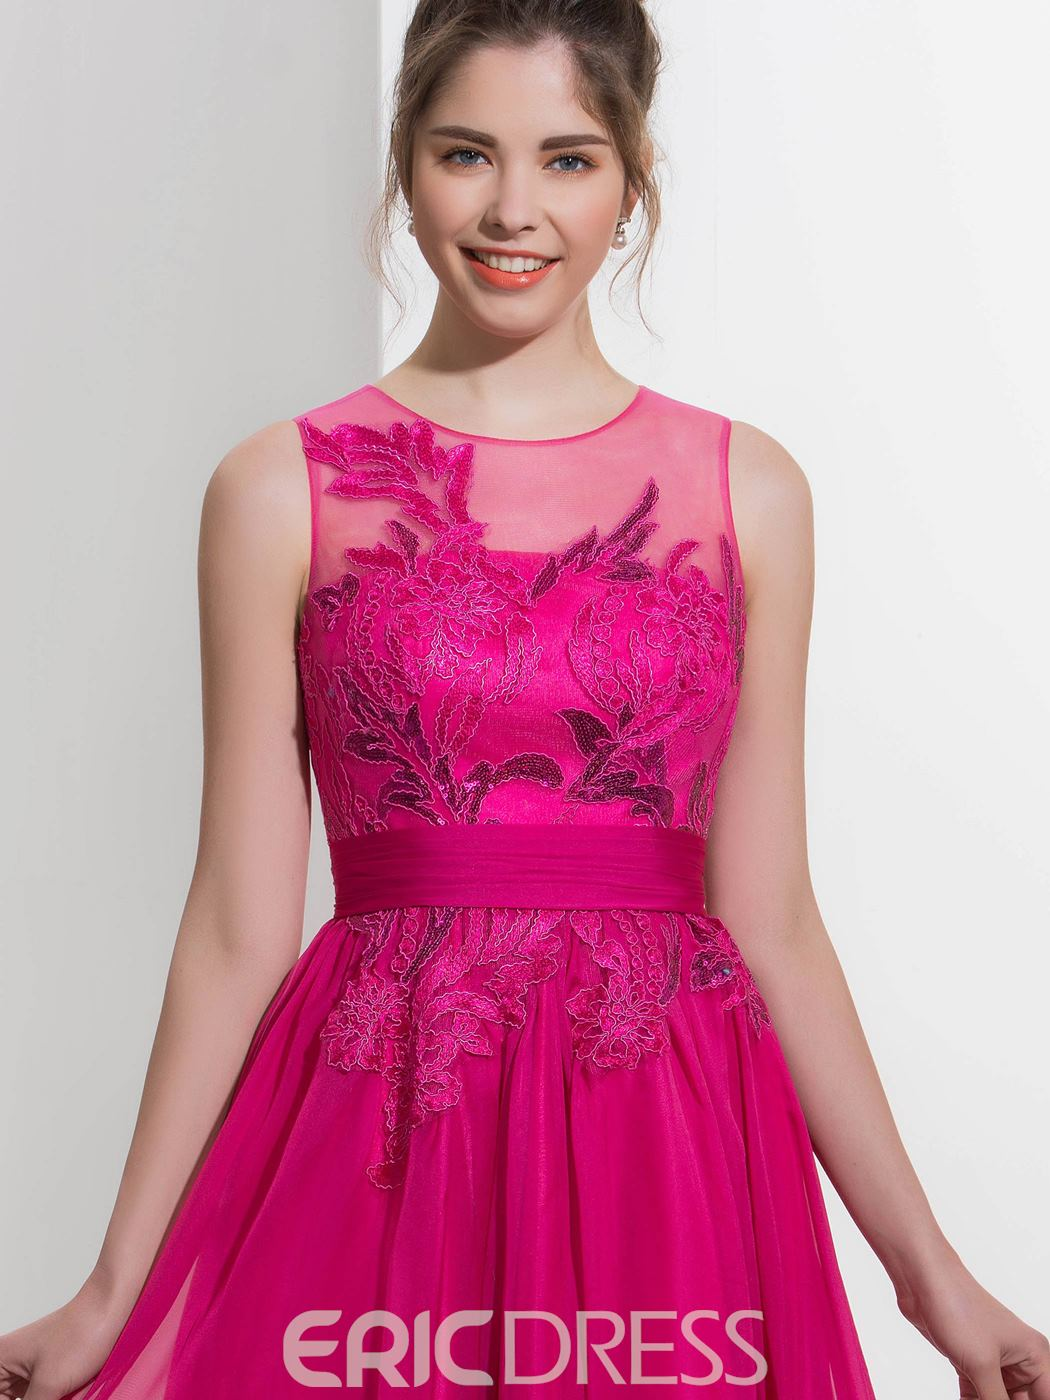 Ericdress A-Line Jewel Appliques Sequins Sweep Train Prom Dress